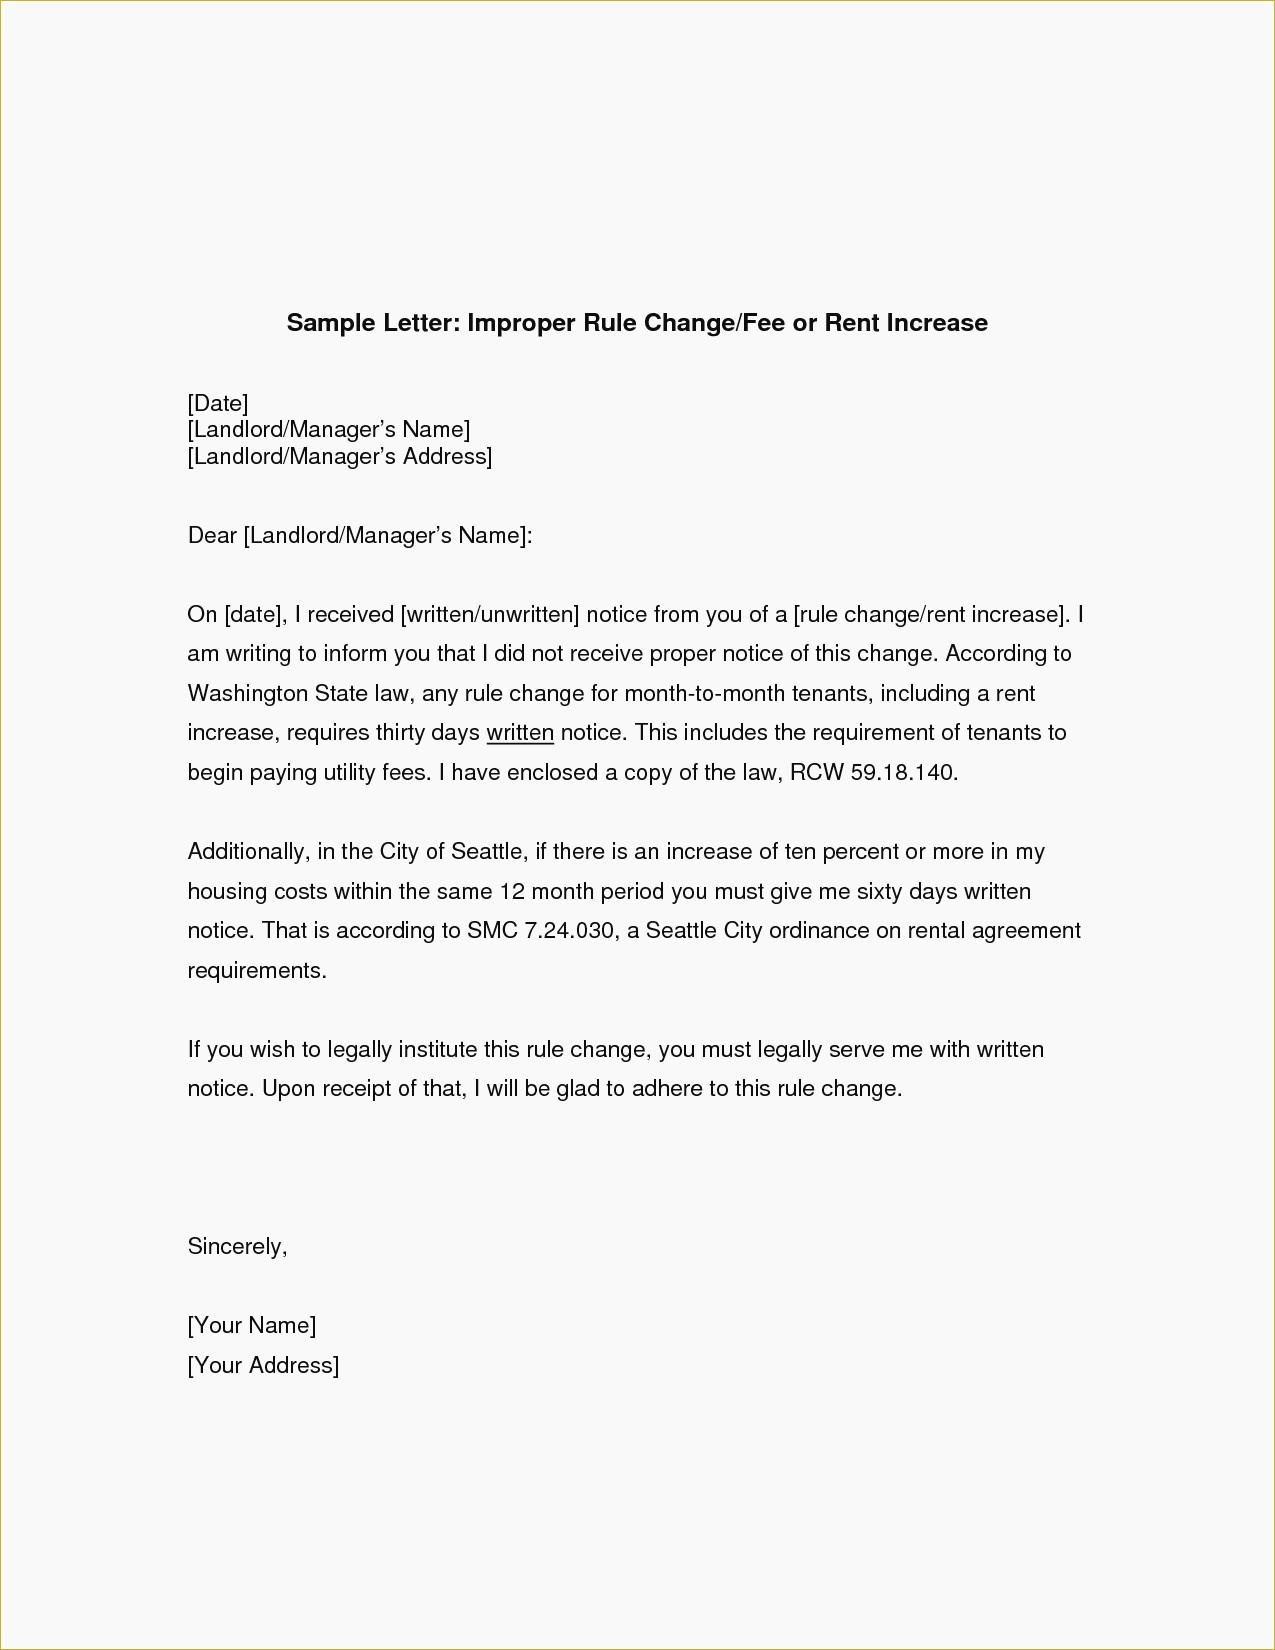 16 Rent Increase Letter To Tenant Template Collection - Letter Templates - Free Printable Rent Increase Letter